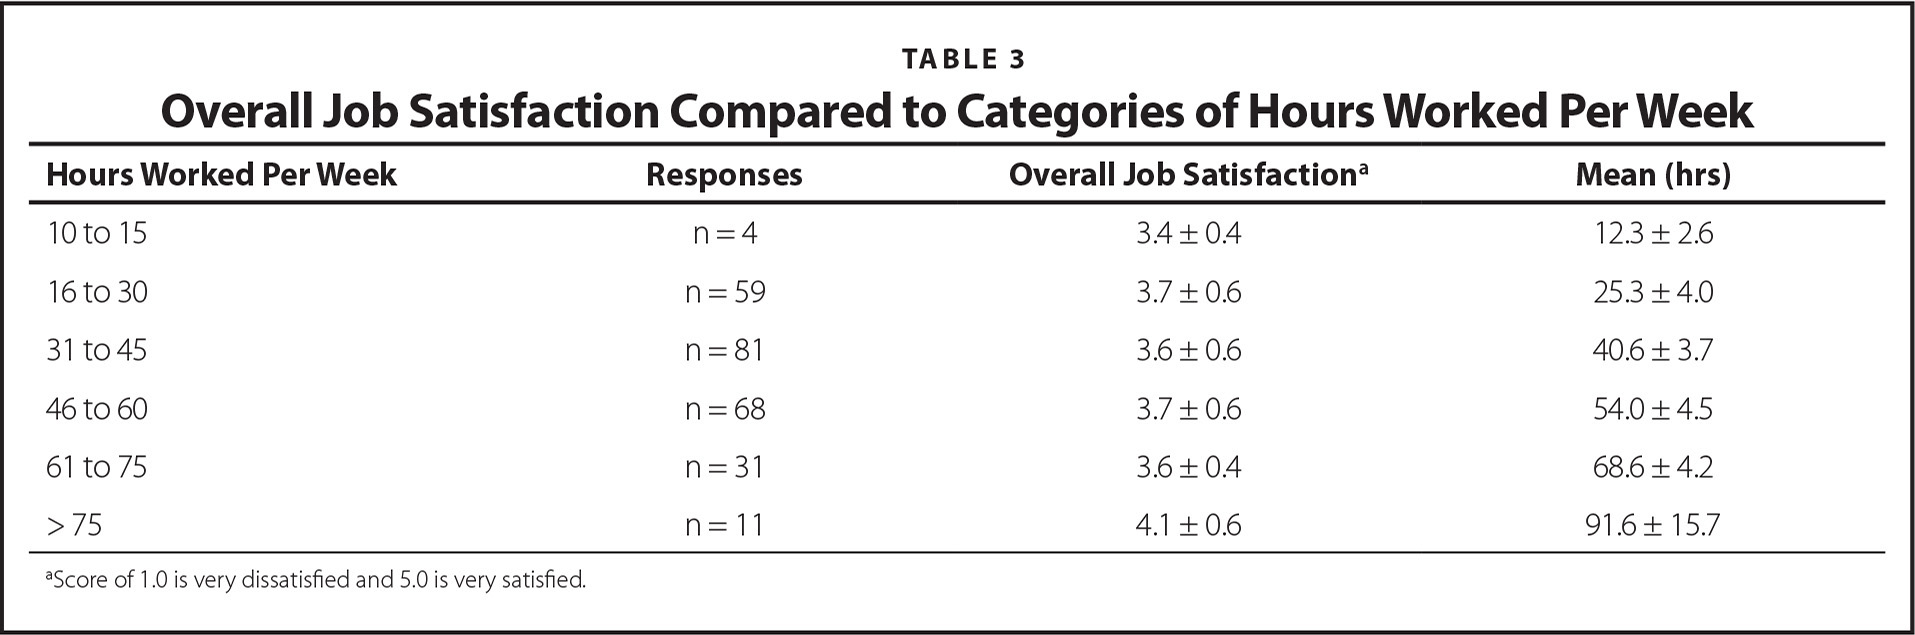 Overall Job Satisfaction Compared to Categories of Hours Worked Per Week